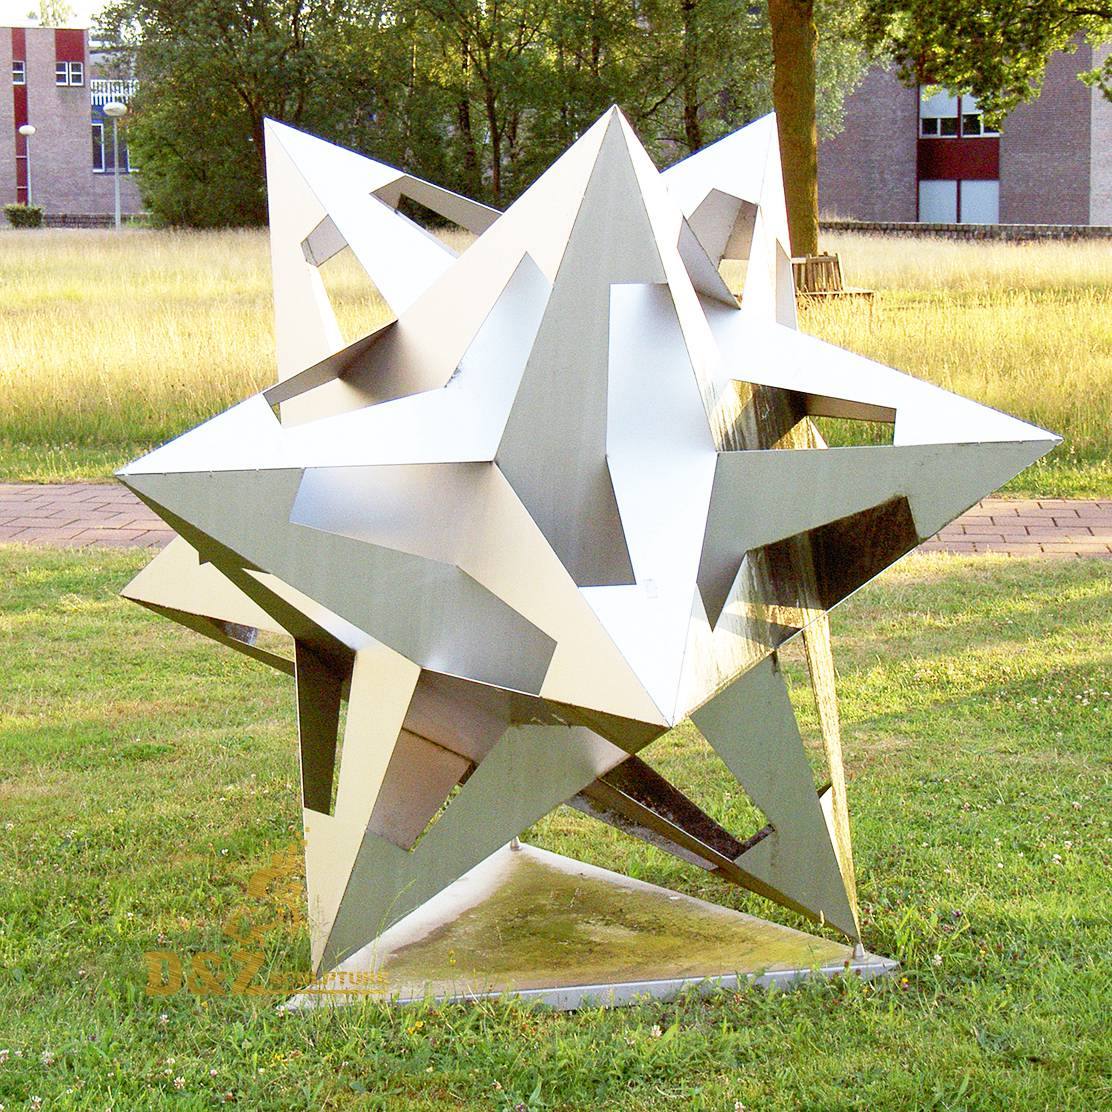 Stainless steel polygon sculpture